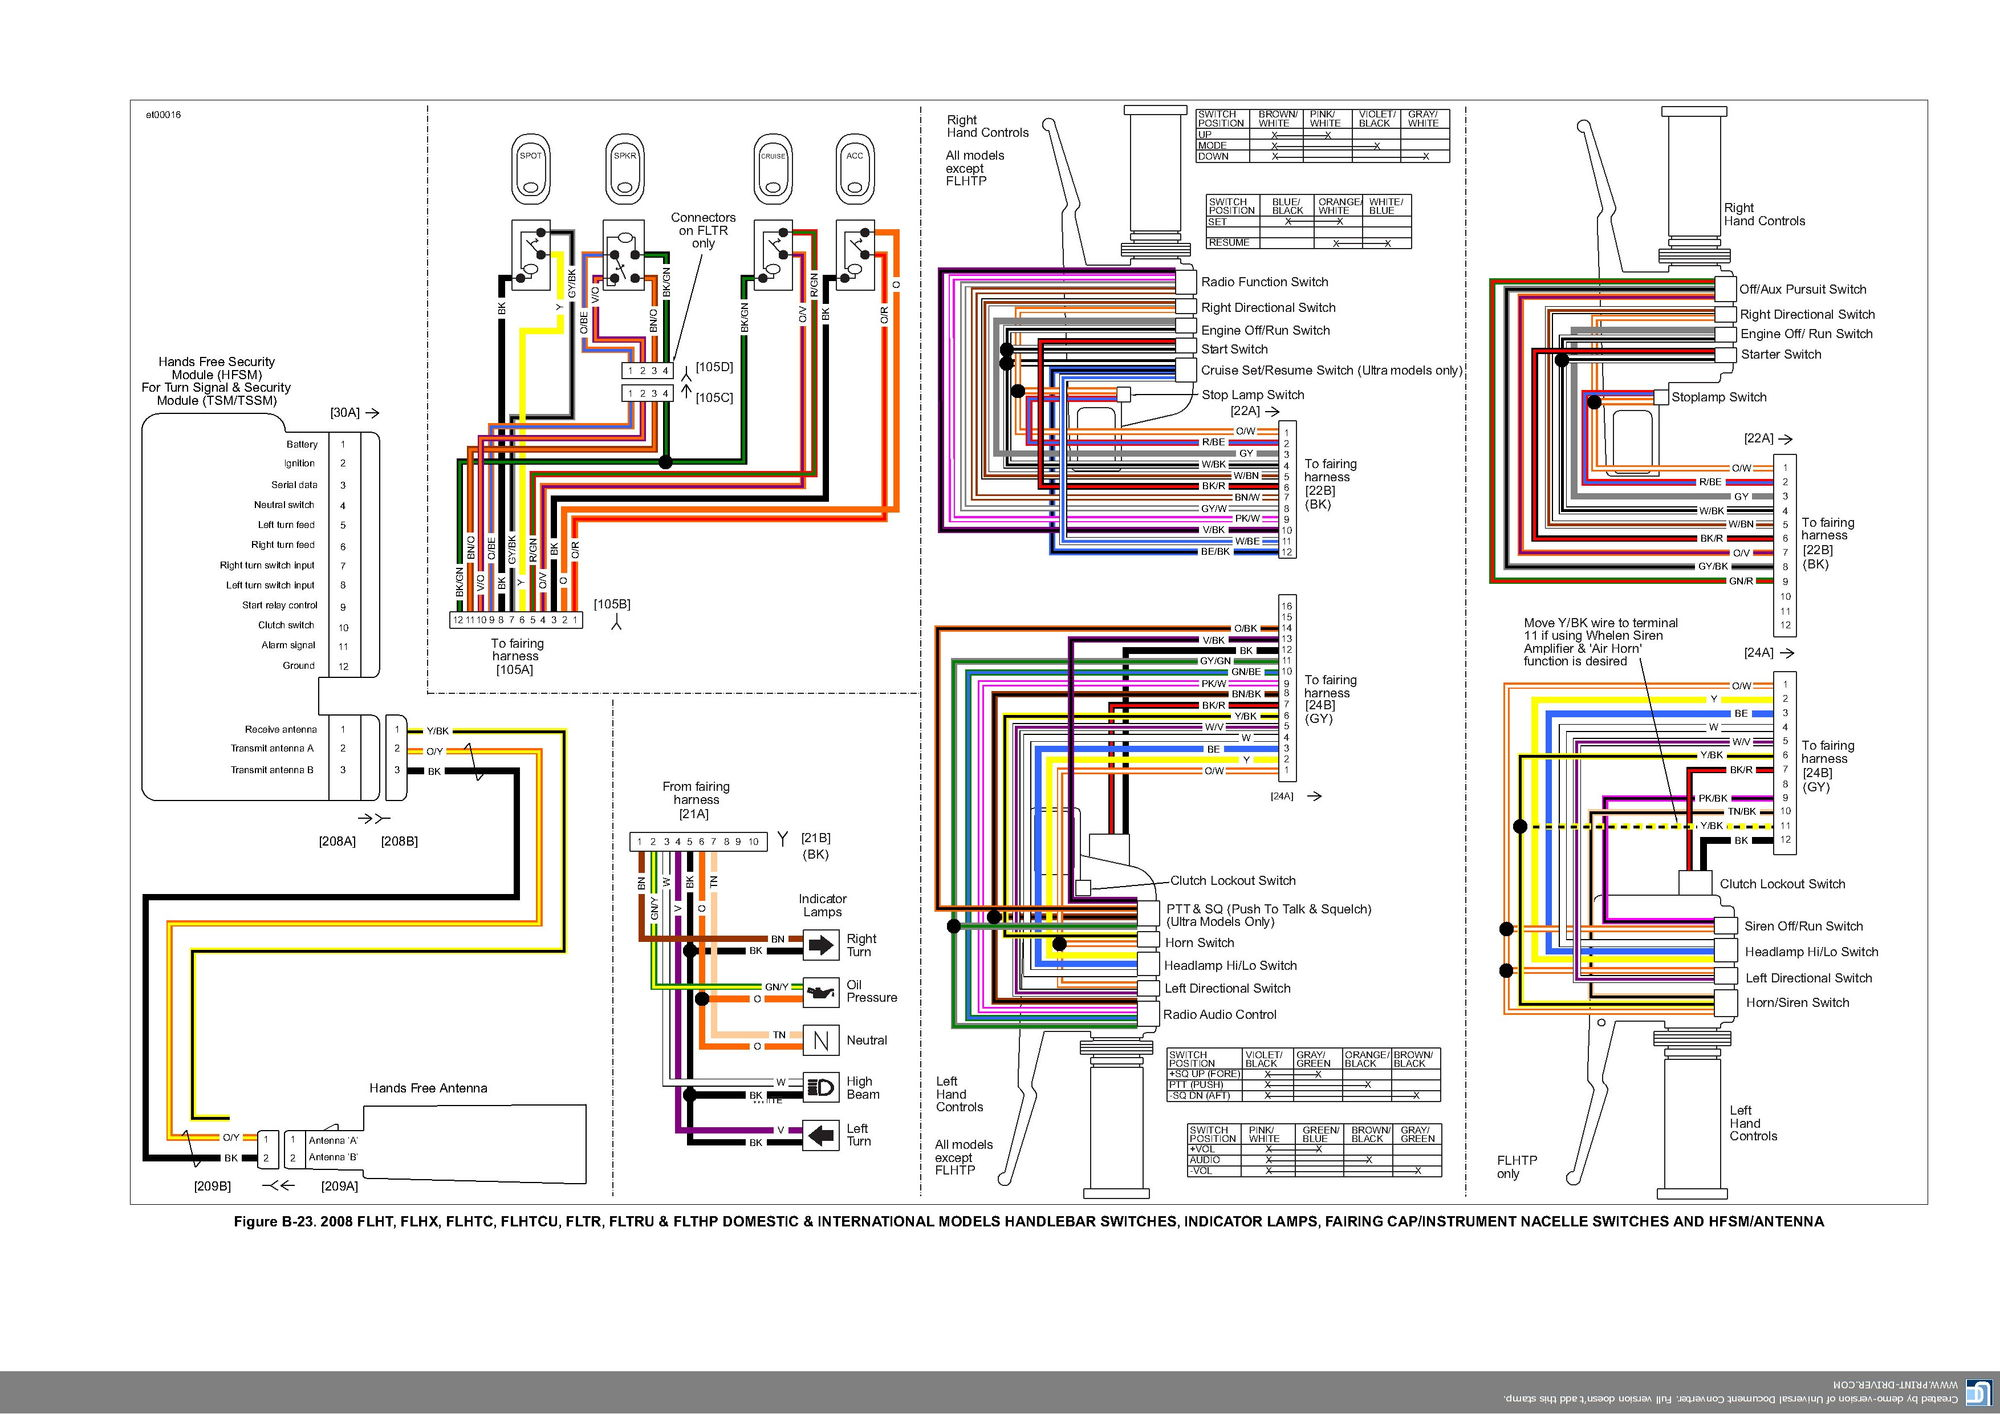 Harley Electra Glide Rear Speaker Wiring Diagram 48 2014 Ultra 80 2008 Touring Electrical Diagnostics Haloween1 16886bd2b476210b2e0b891c154b367aebbc03be Davidson Fuse Box Simonand